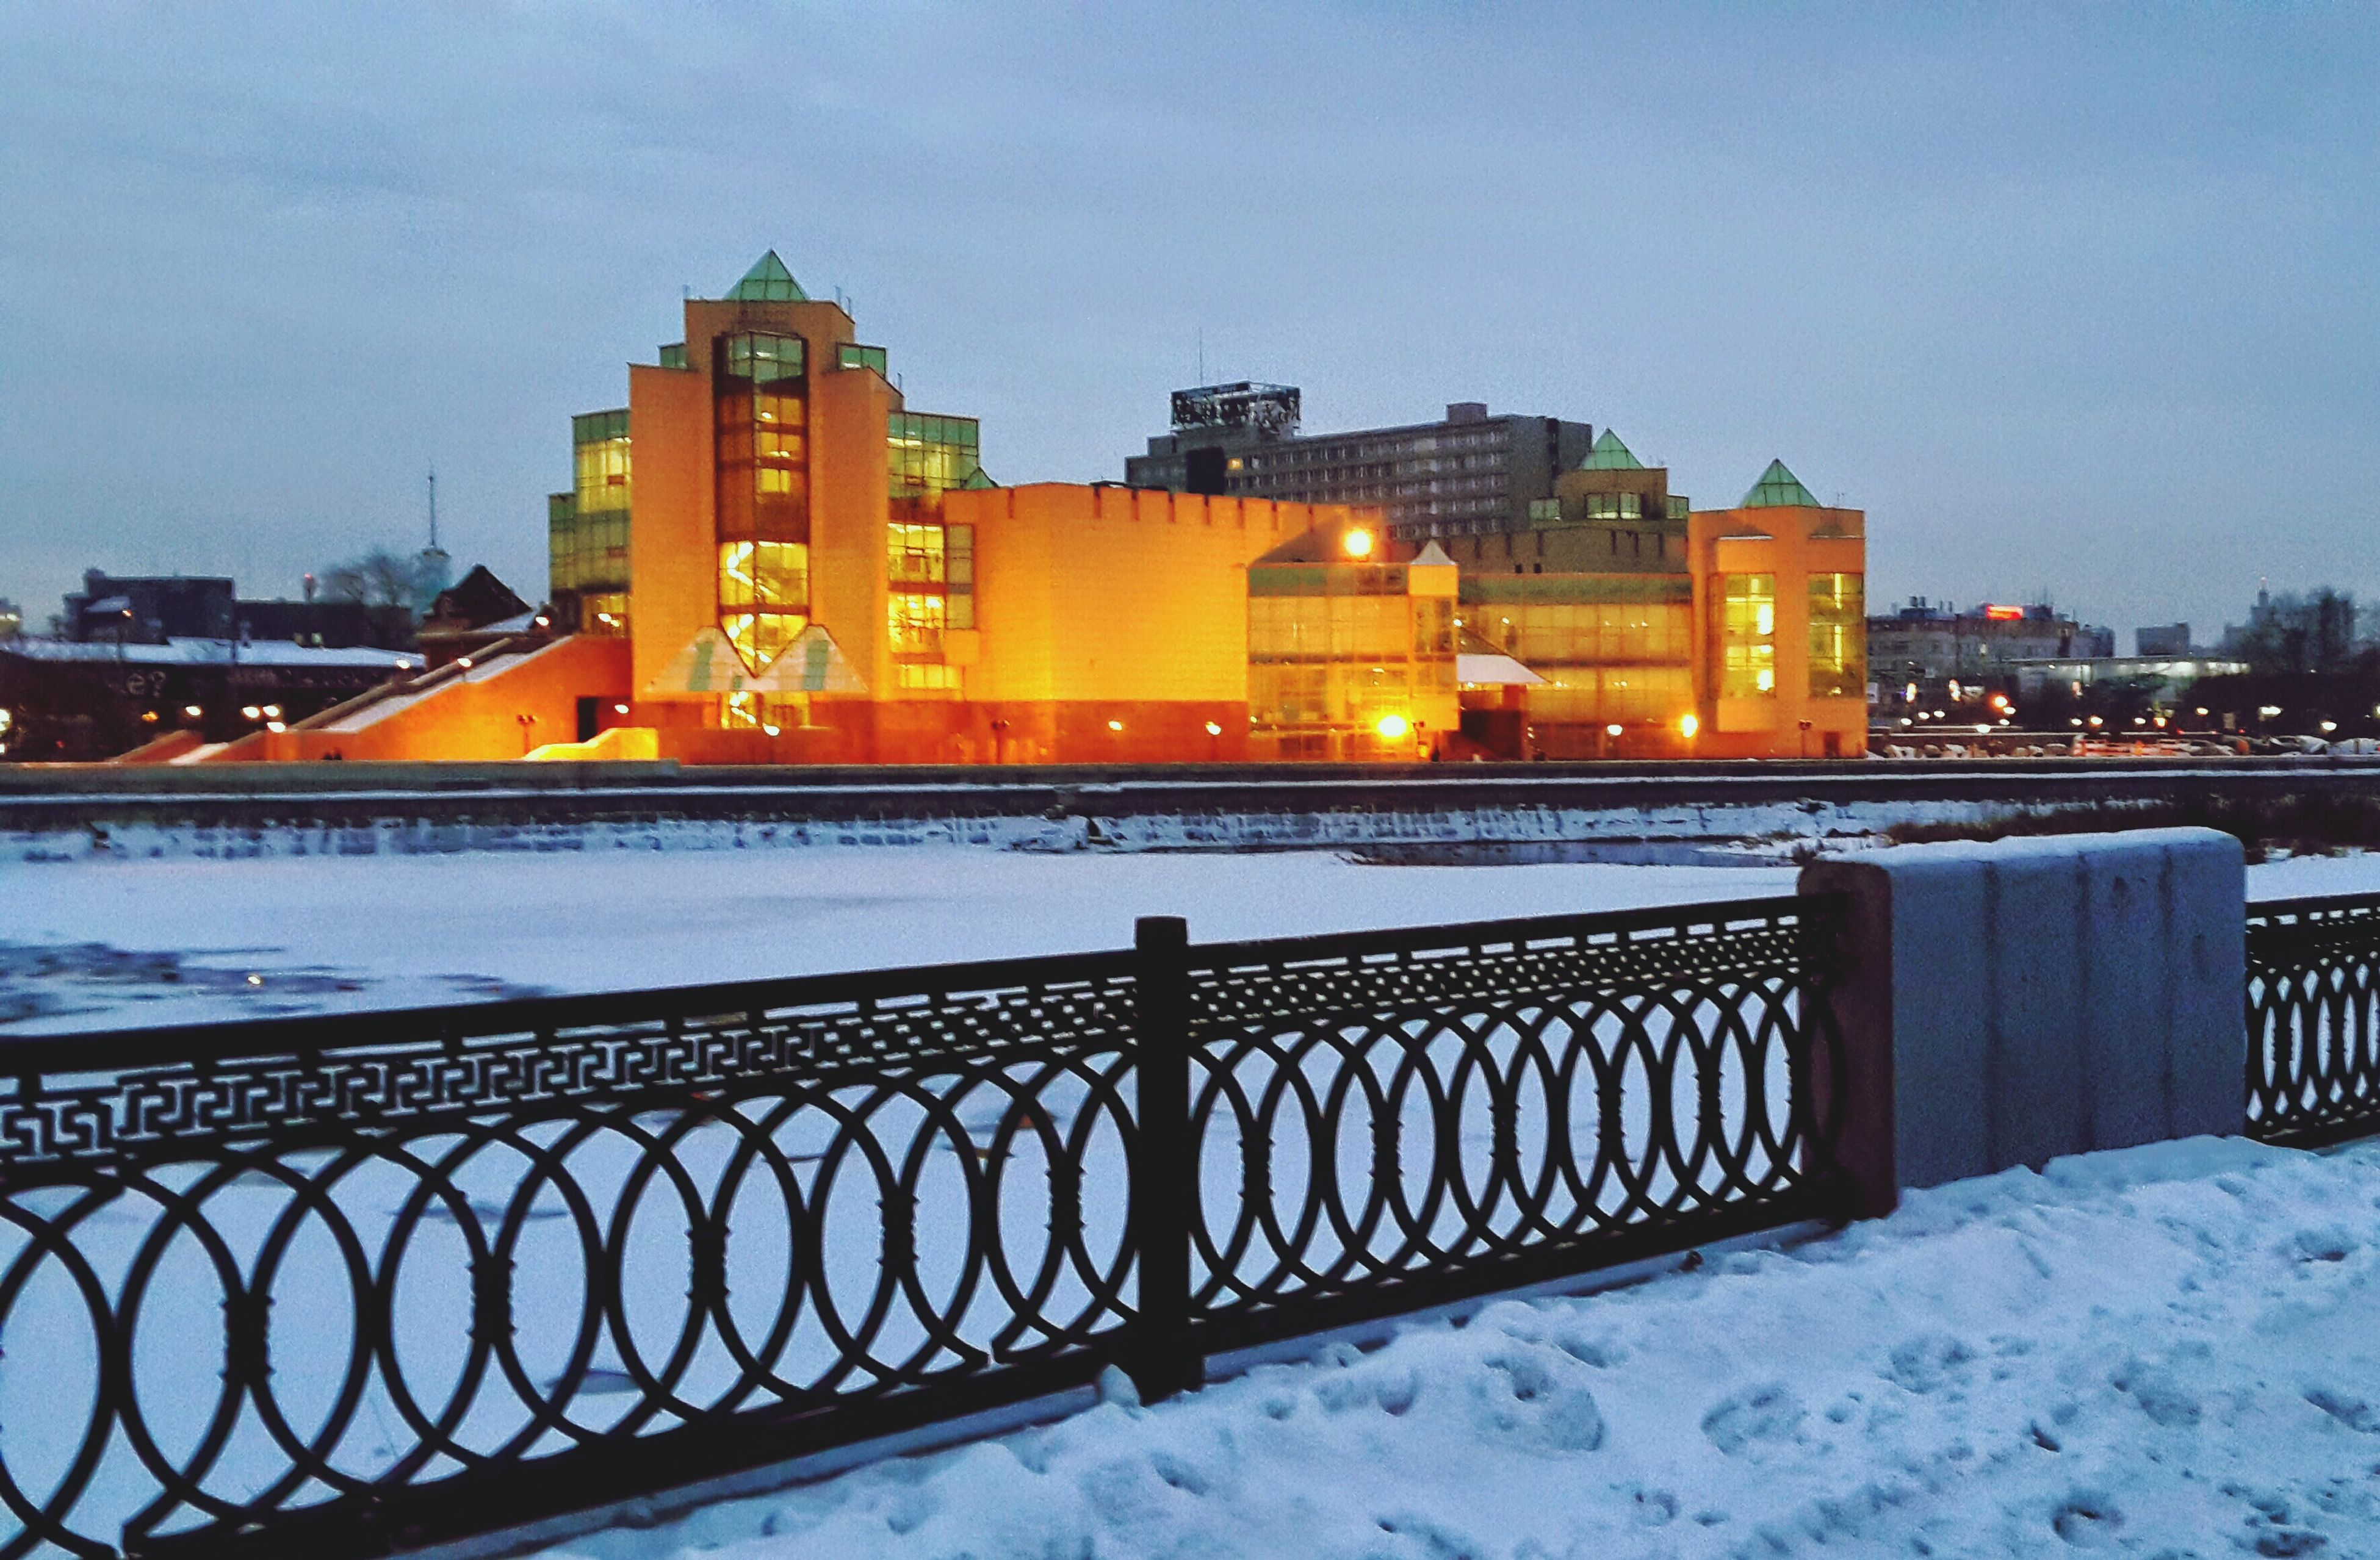 snow, winter, cold temperature, season, building exterior, architecture, built structure, illuminated, sunset, weather, frozen, covering, sky, dusk, railing, night, street light, outdoors, covered, orange color